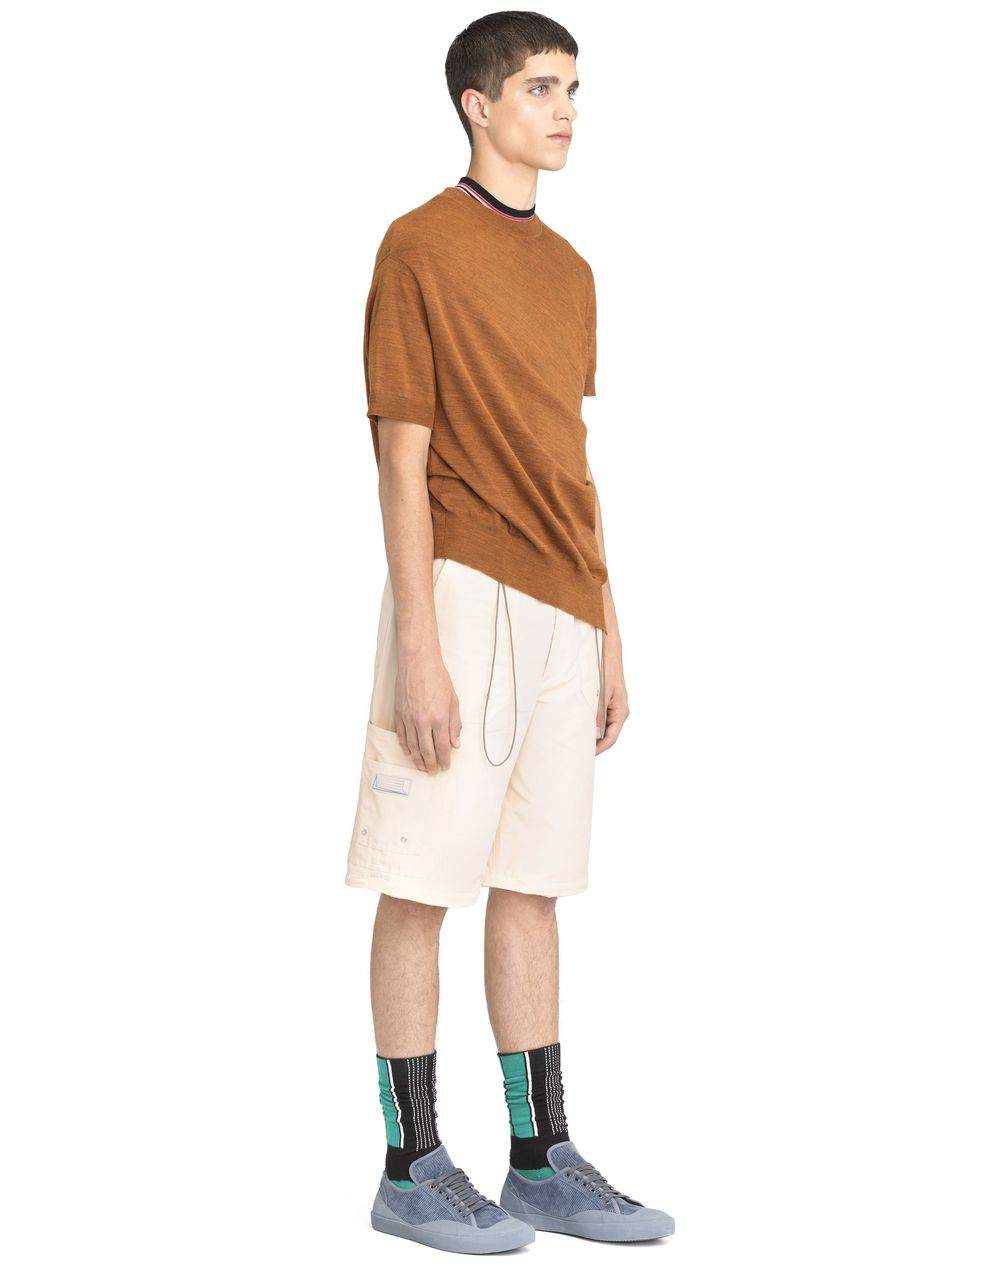 RUST-COLORED ASYMMETRICAL TWISTED SWEATER - Lanvin